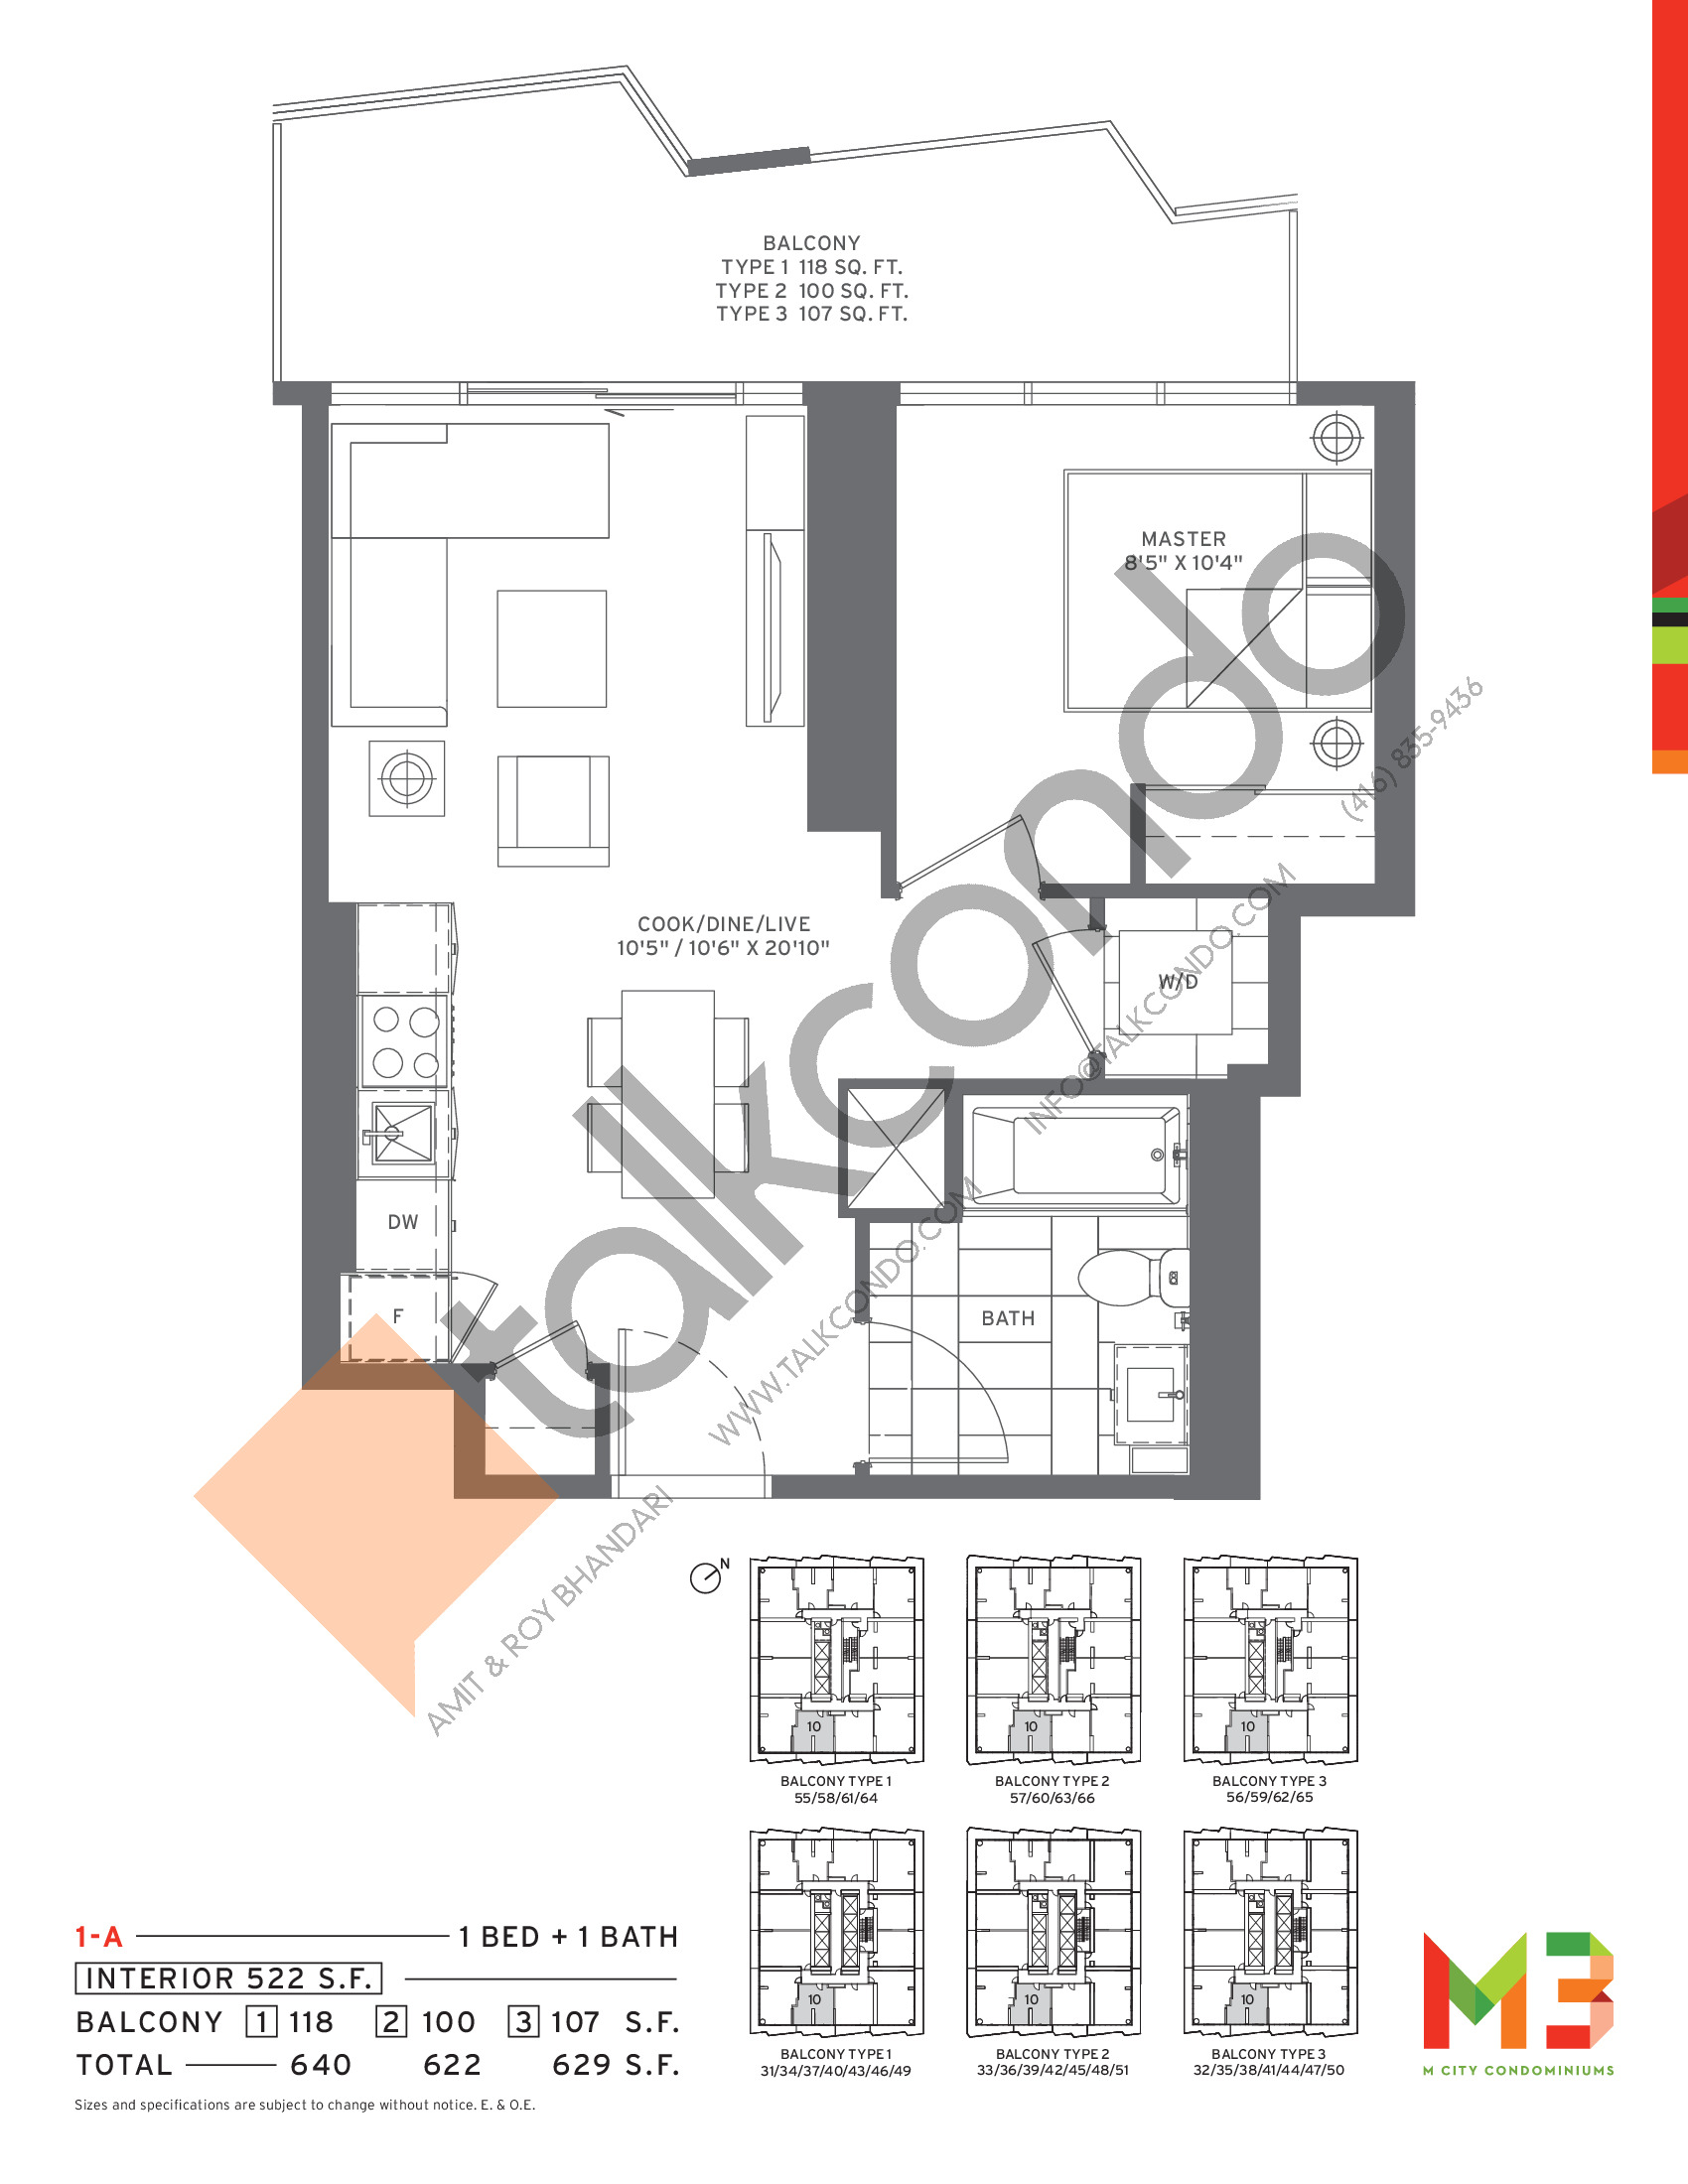 1-A Floor Plan at M3 Condos - 522 sq.ft